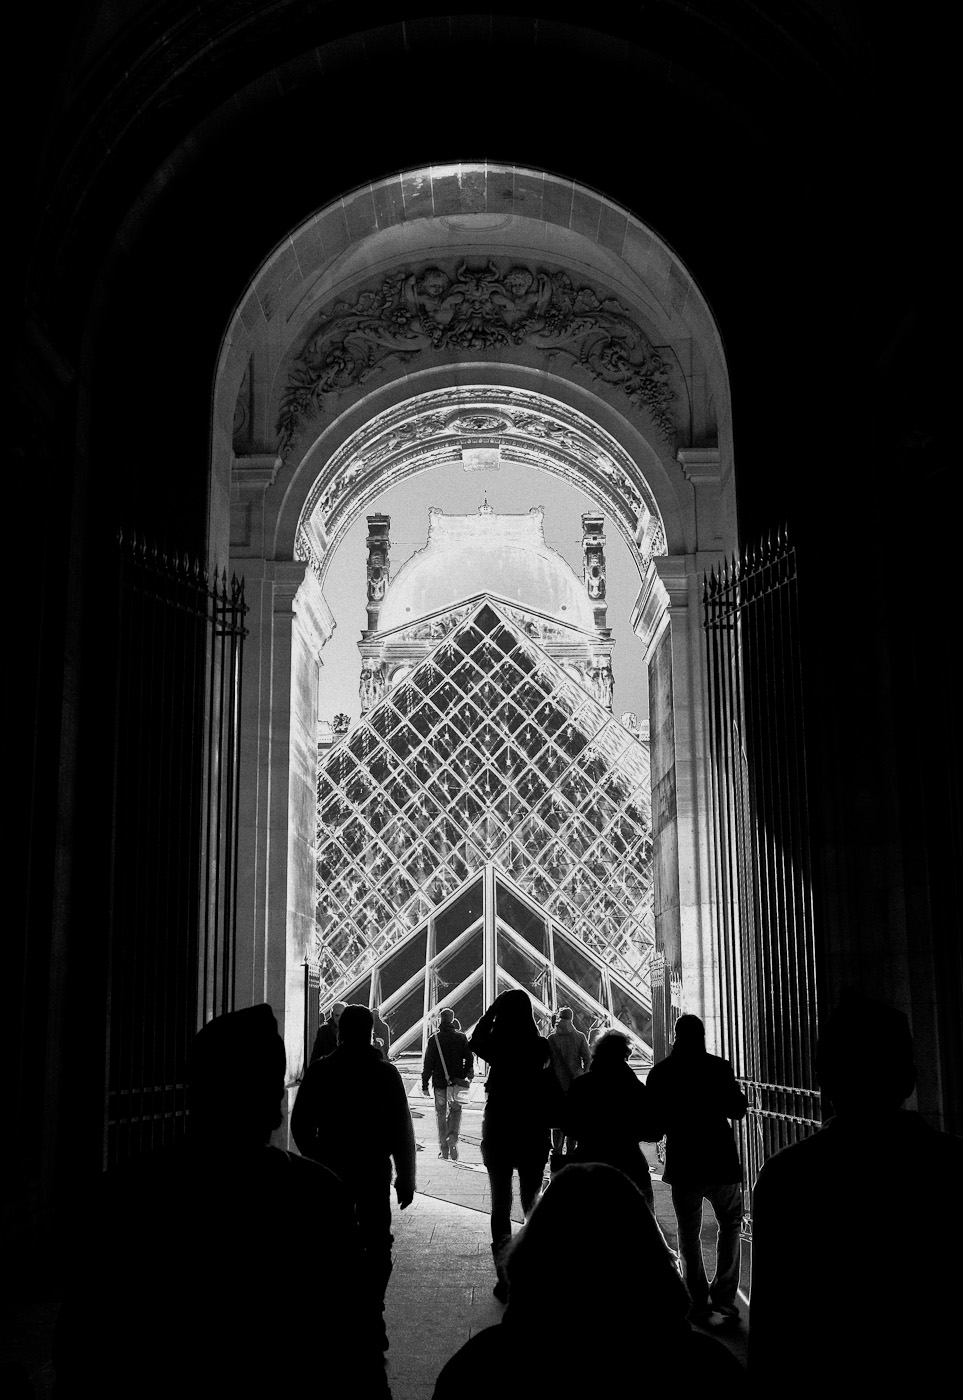 The passage towards the Louvre glass pyramid, solarized. Zeiss Biogon ZM 25/2.8 on SOny NEX-5n